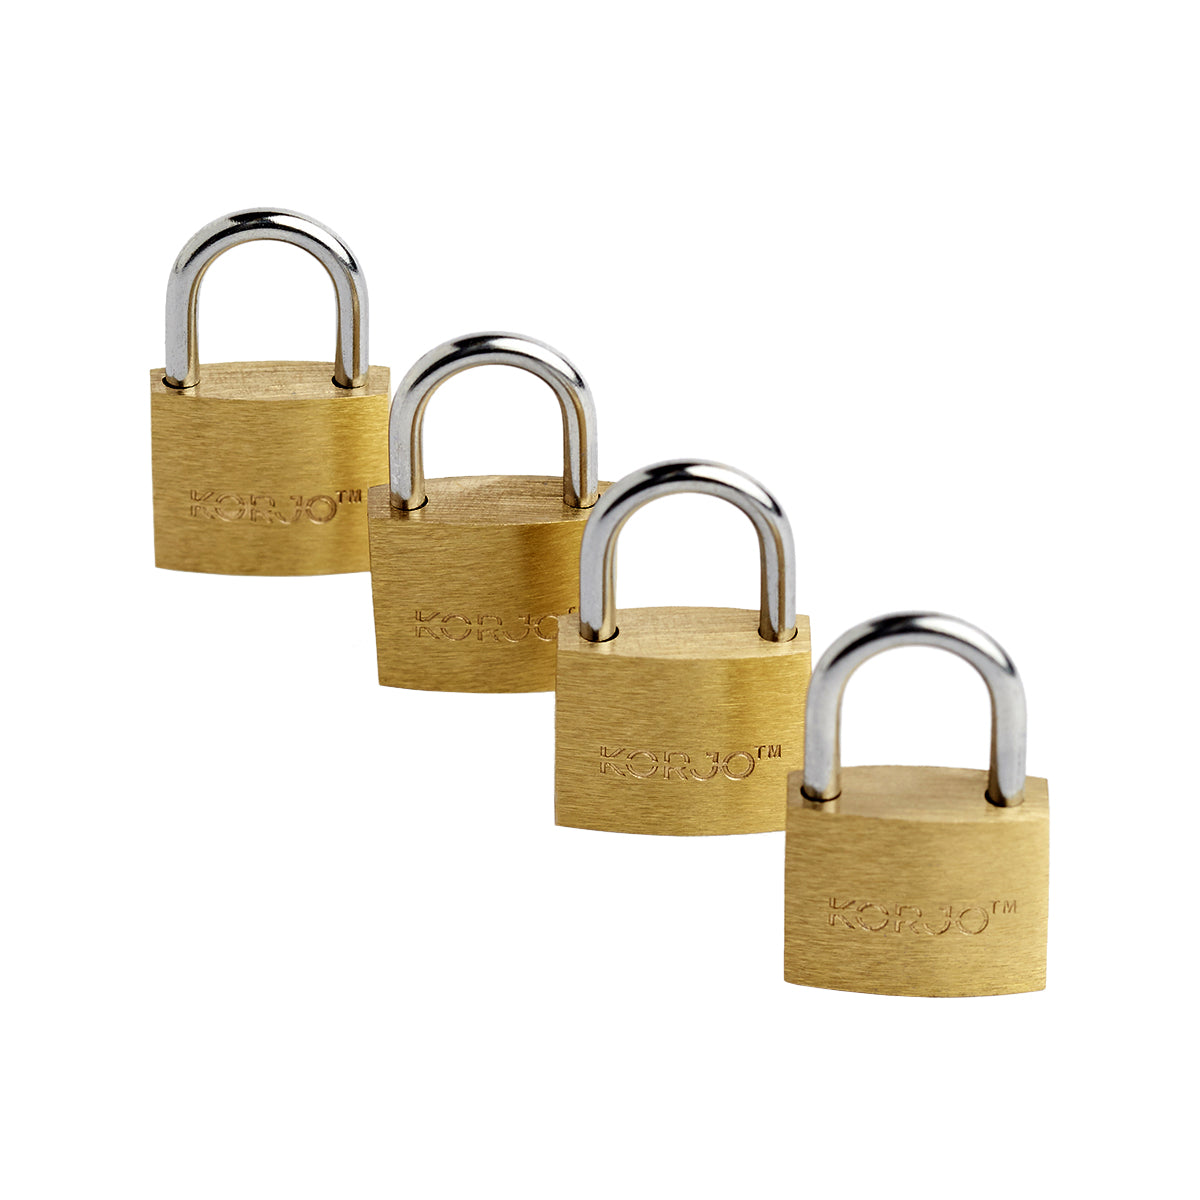 Korjo- Luggage locks (4 pack)